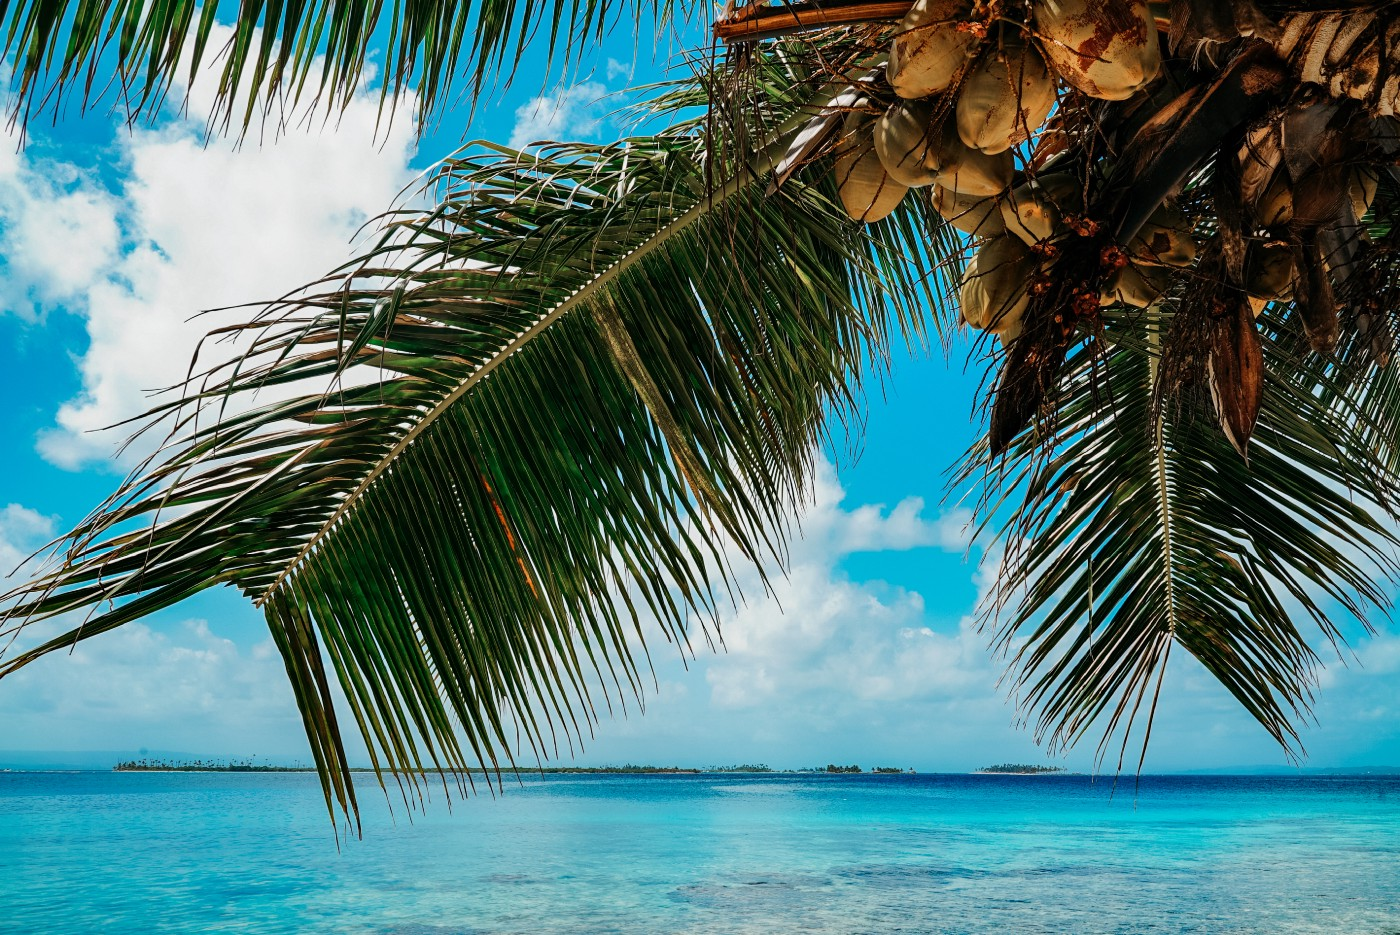 Palm tree over ocean. Rebecca Murauskas Medium writer. How to move to another country. American expat living abroad. FIRE